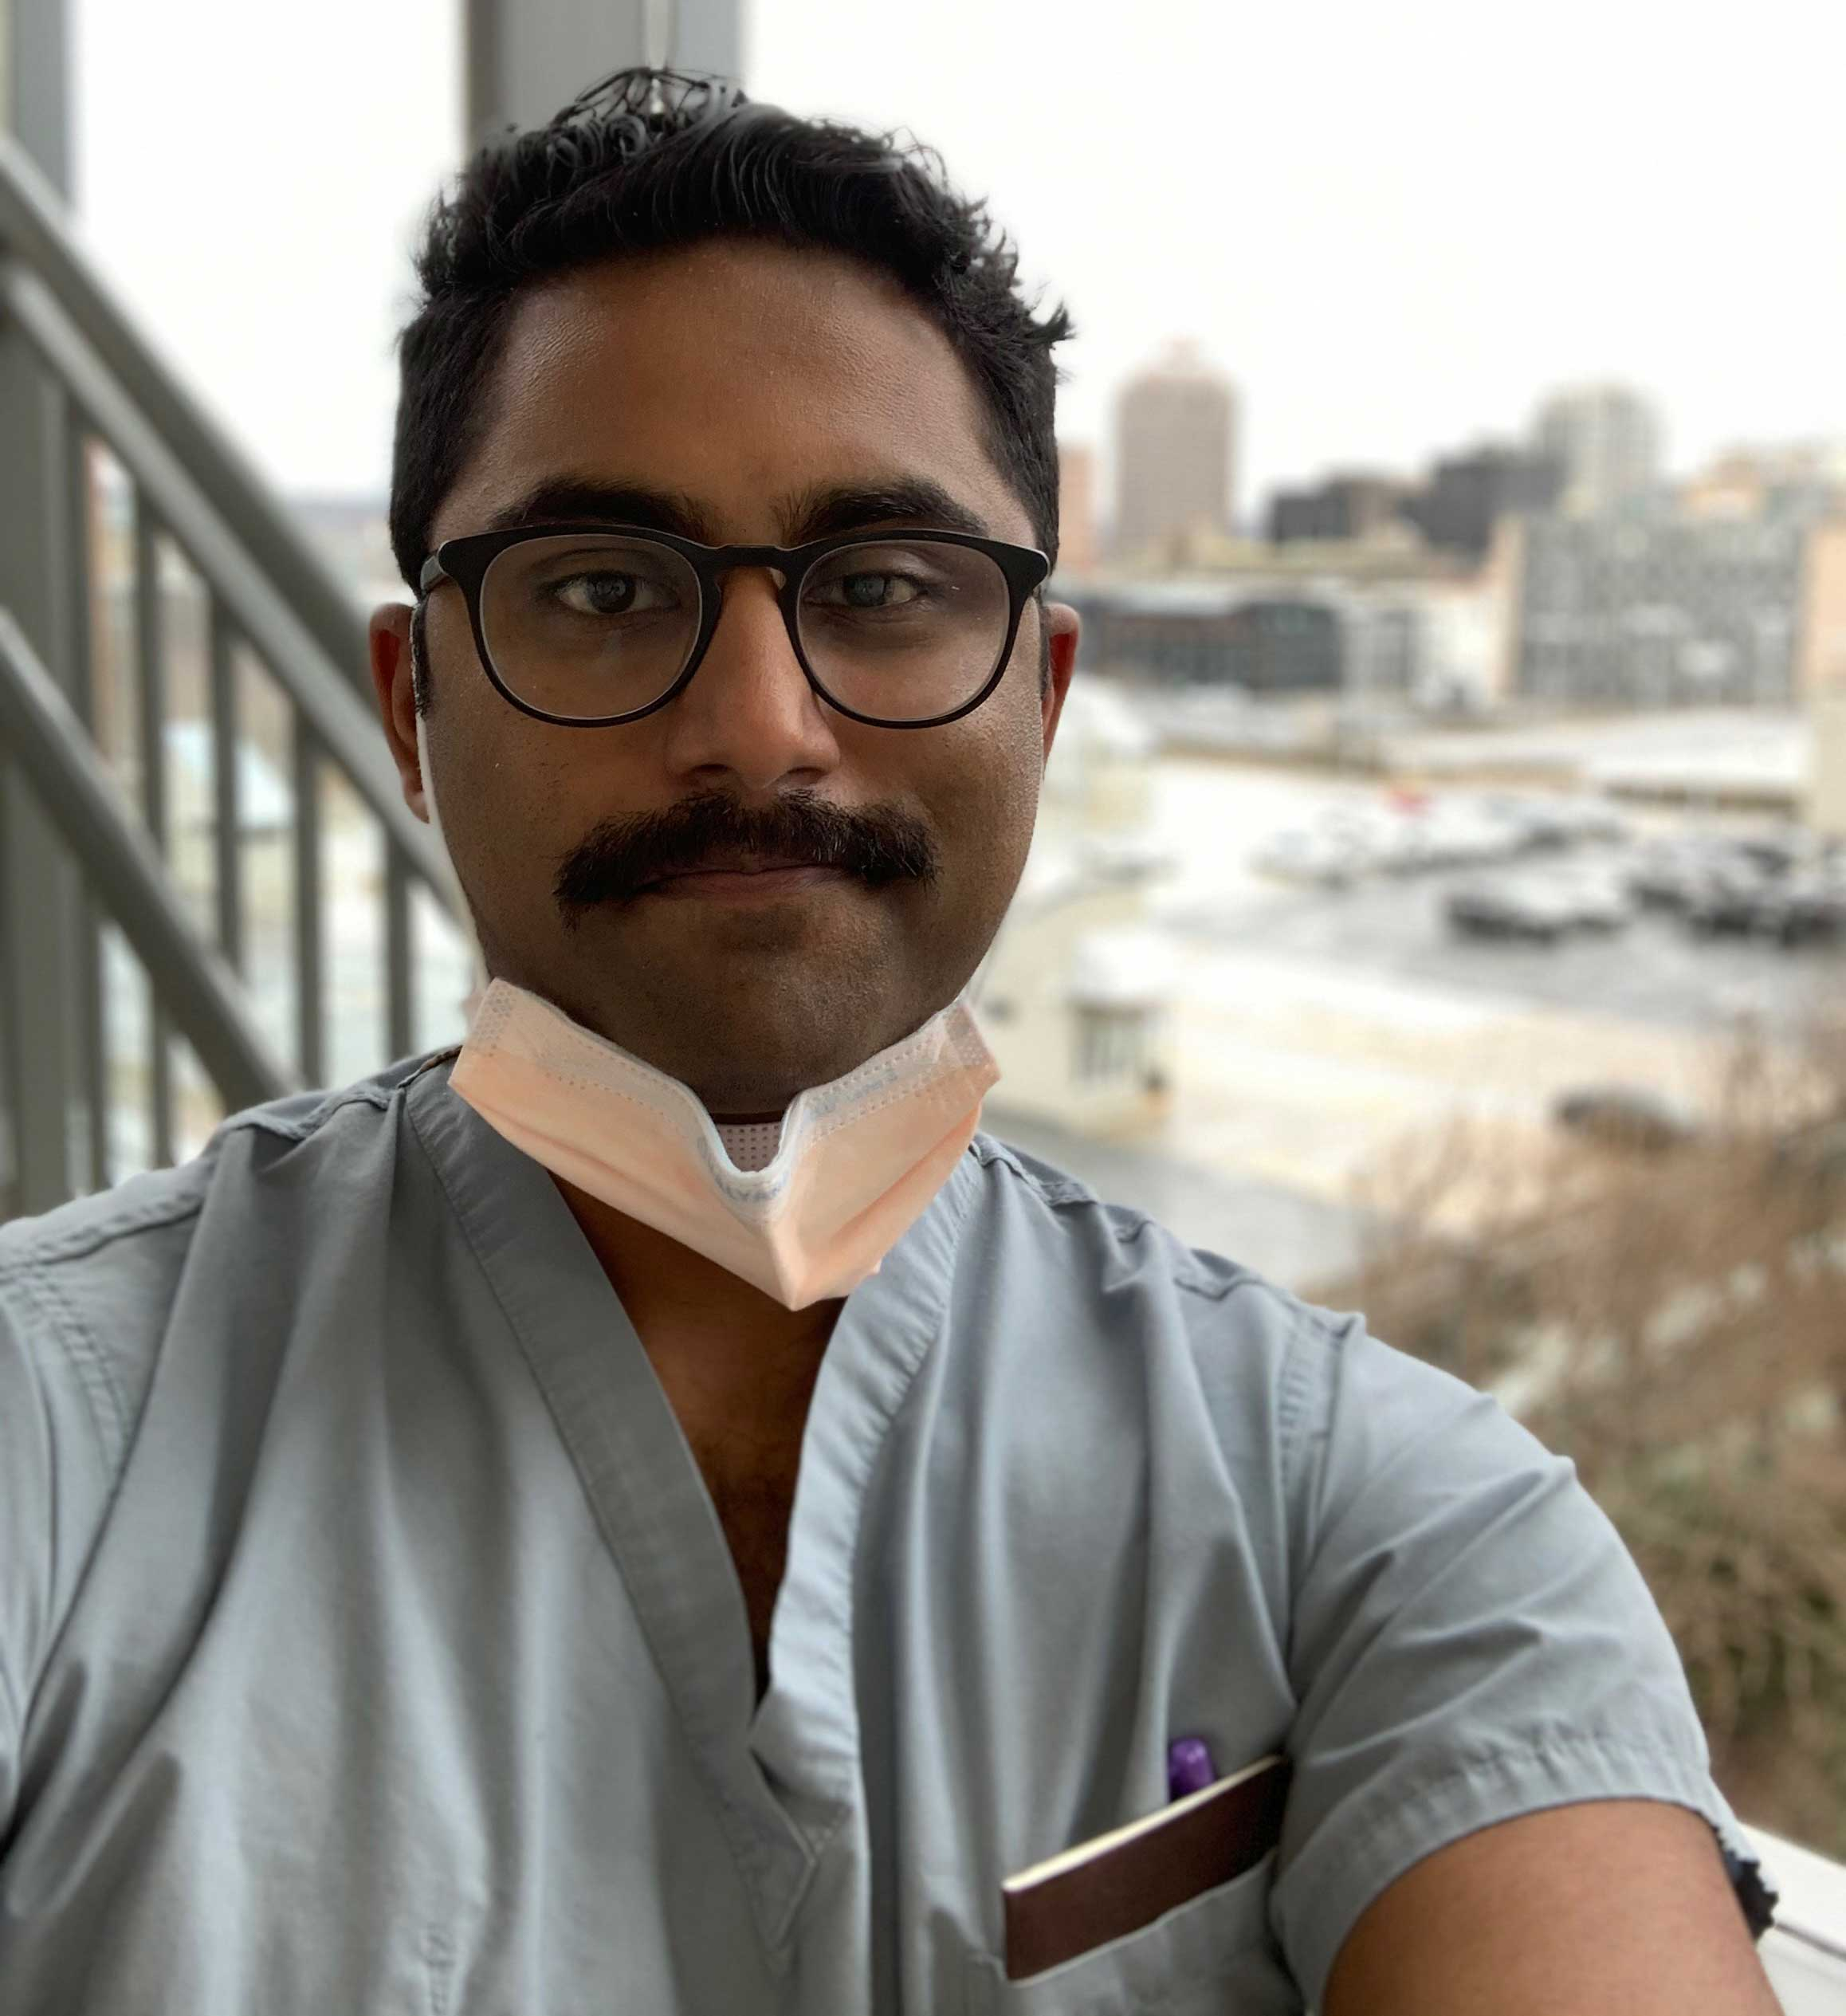 Pranav Reddy is a resident physician in Connecticut. (Pranav Reddy)